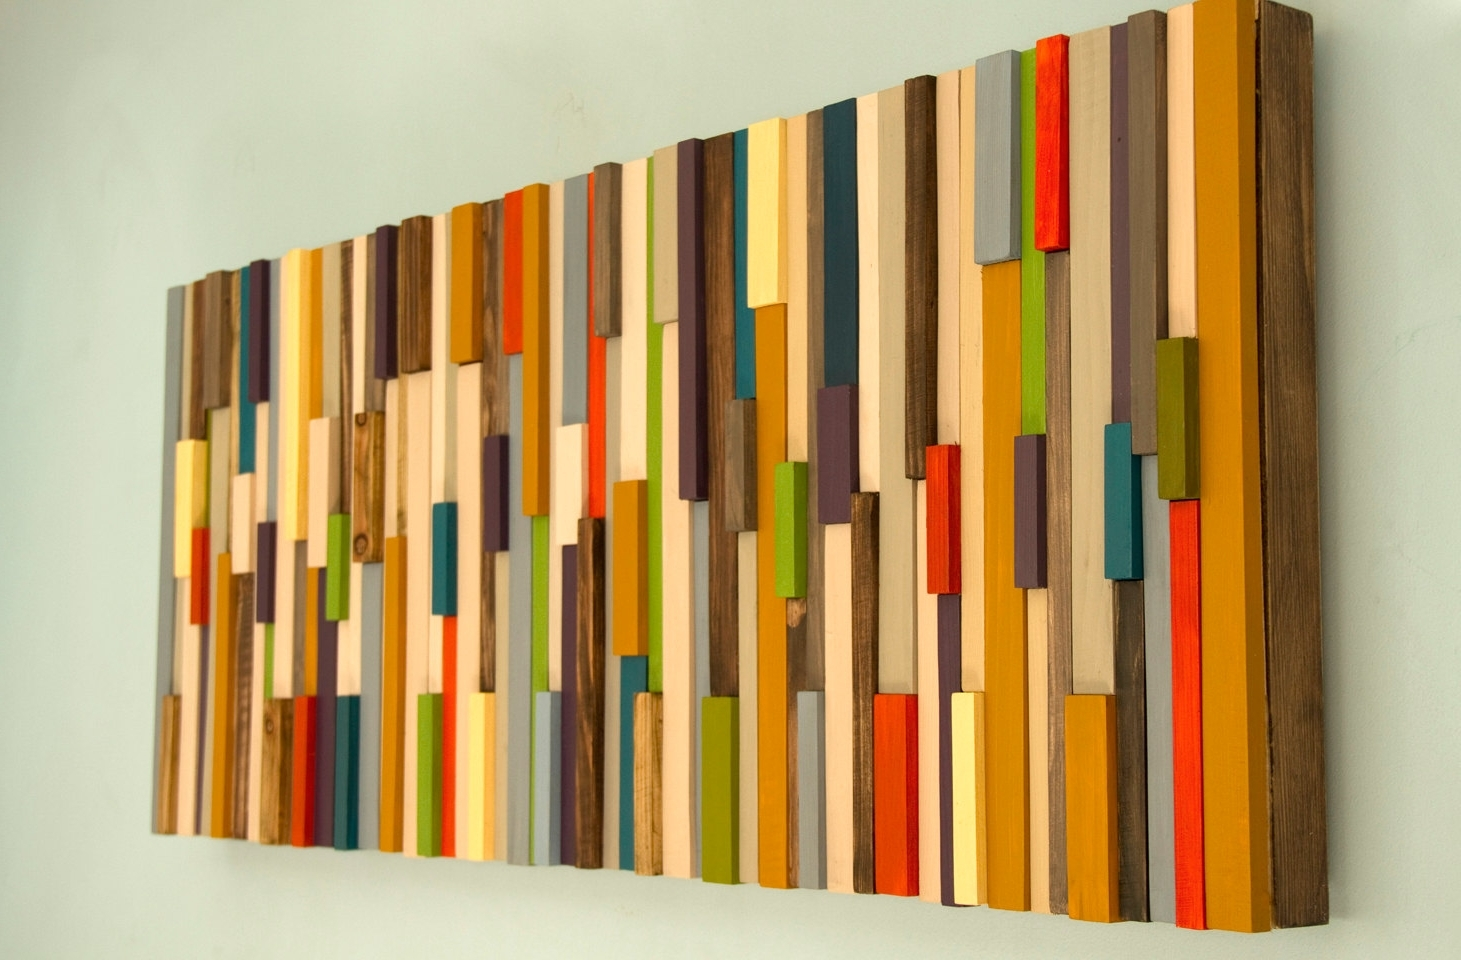 Modern Large Wall Art, Reclaimed Wood Art Sculpture, Painted Wood In Most Recent Wood Art Wall (View 6 of 15)